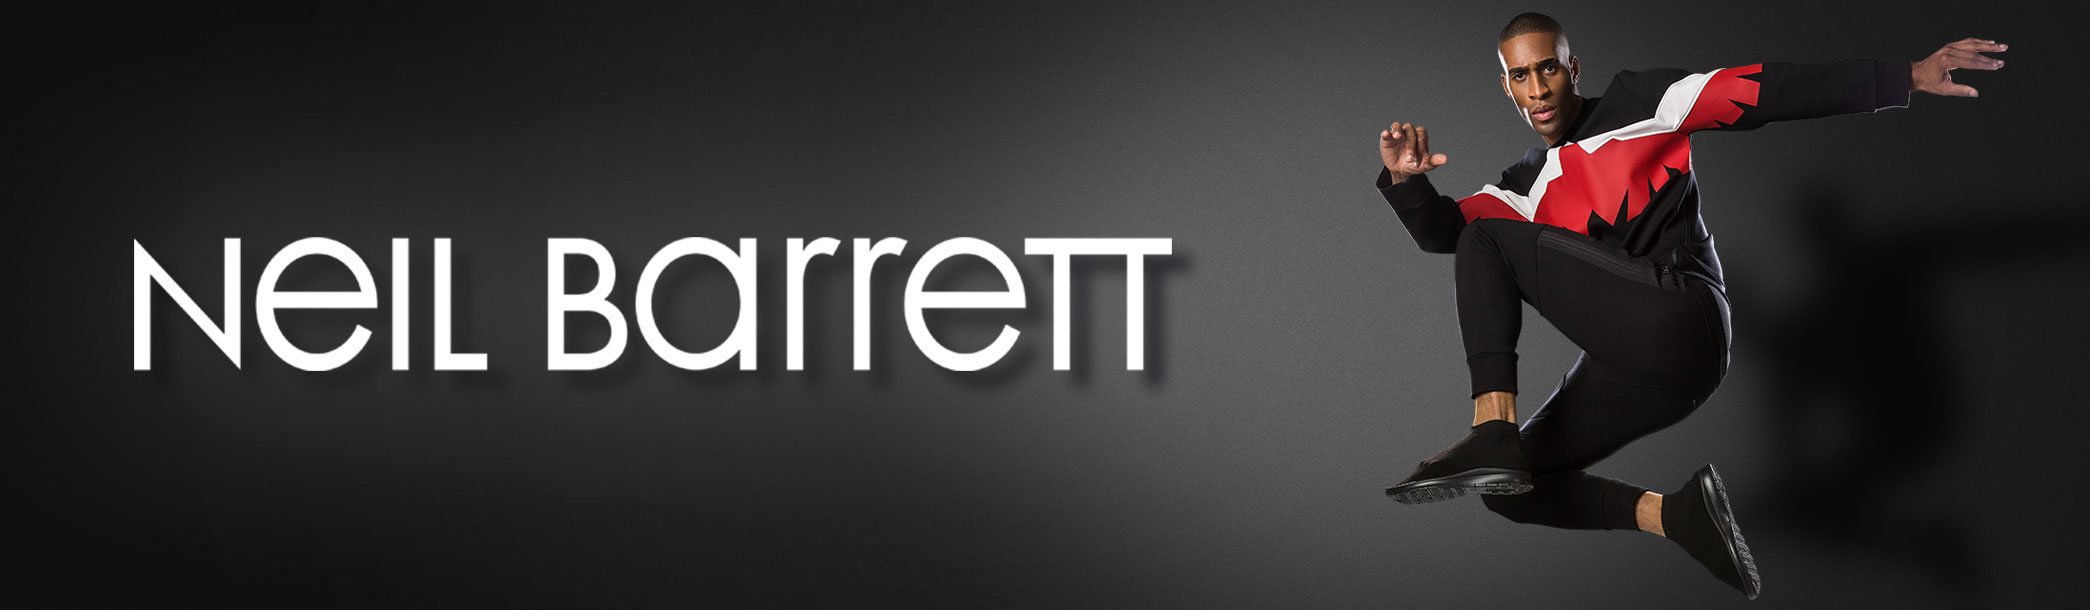 Brand Spotlight: Neil Barrett for Men